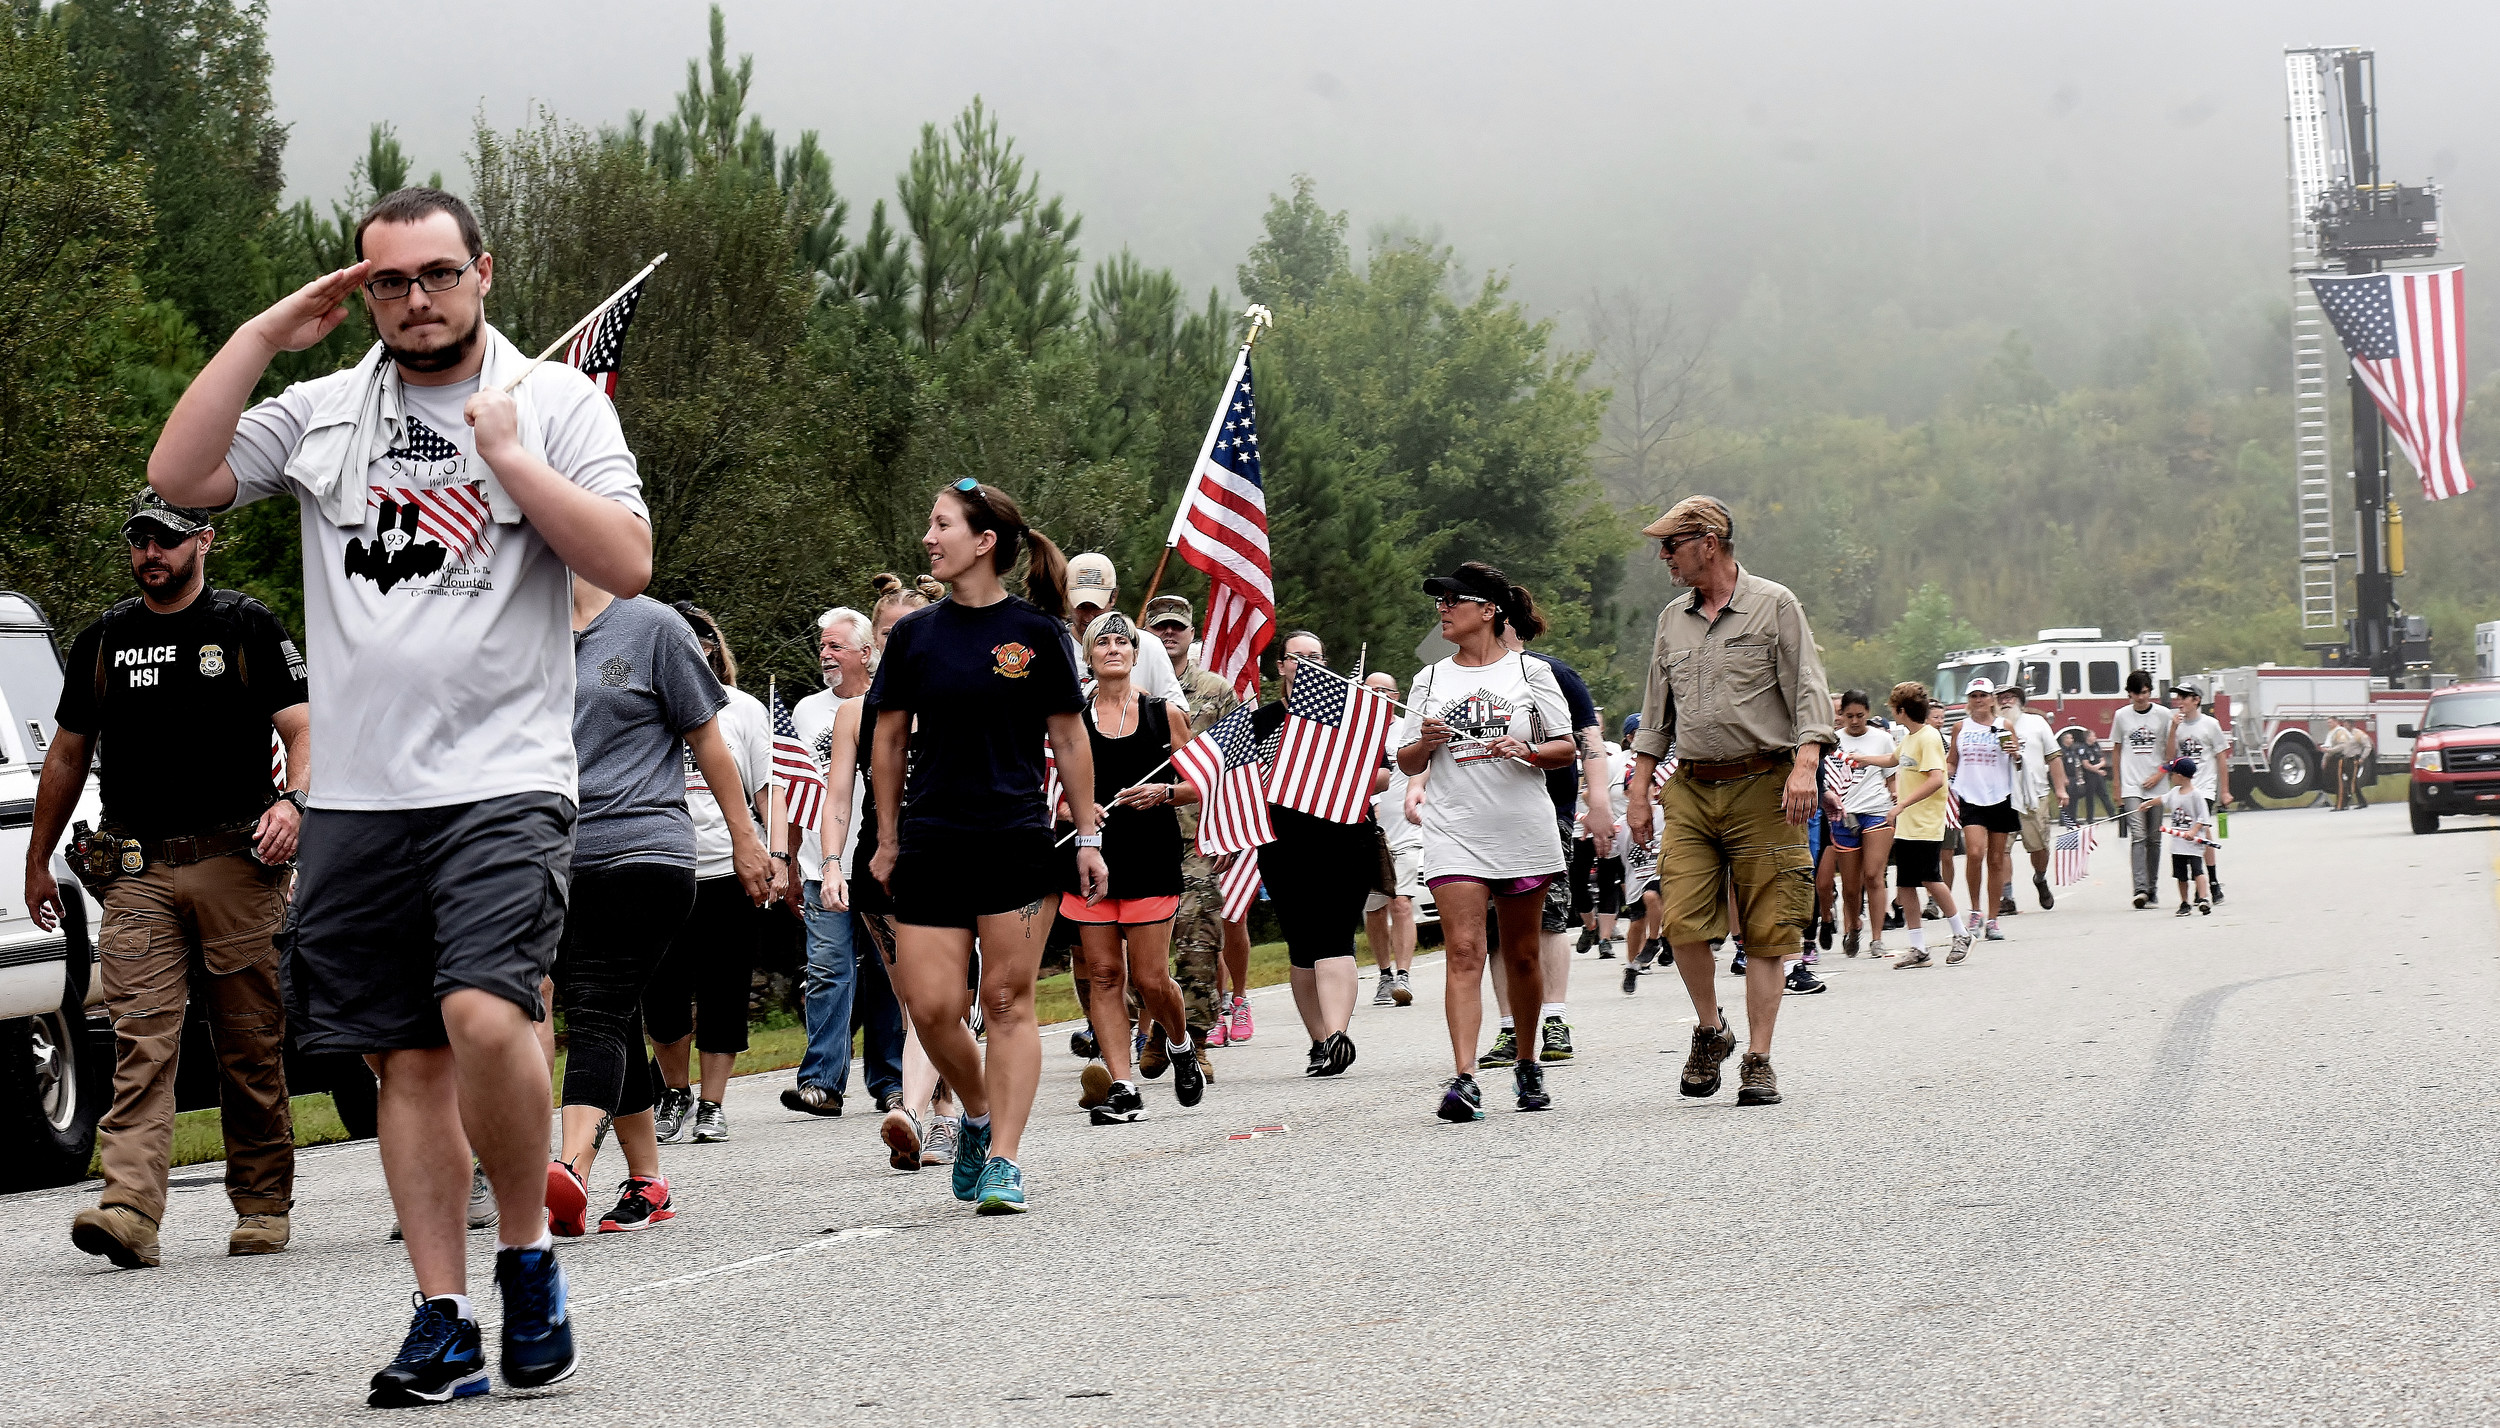 Approximately 100 men, women and children took part in the annual 9/11 March to the Mountain Tuesday morning in Cartersville. Following the national anthem, the group started the 6.5-mile loop at 9:11 a.m. from the base of Pine Mountain, which also served as the finishing point.